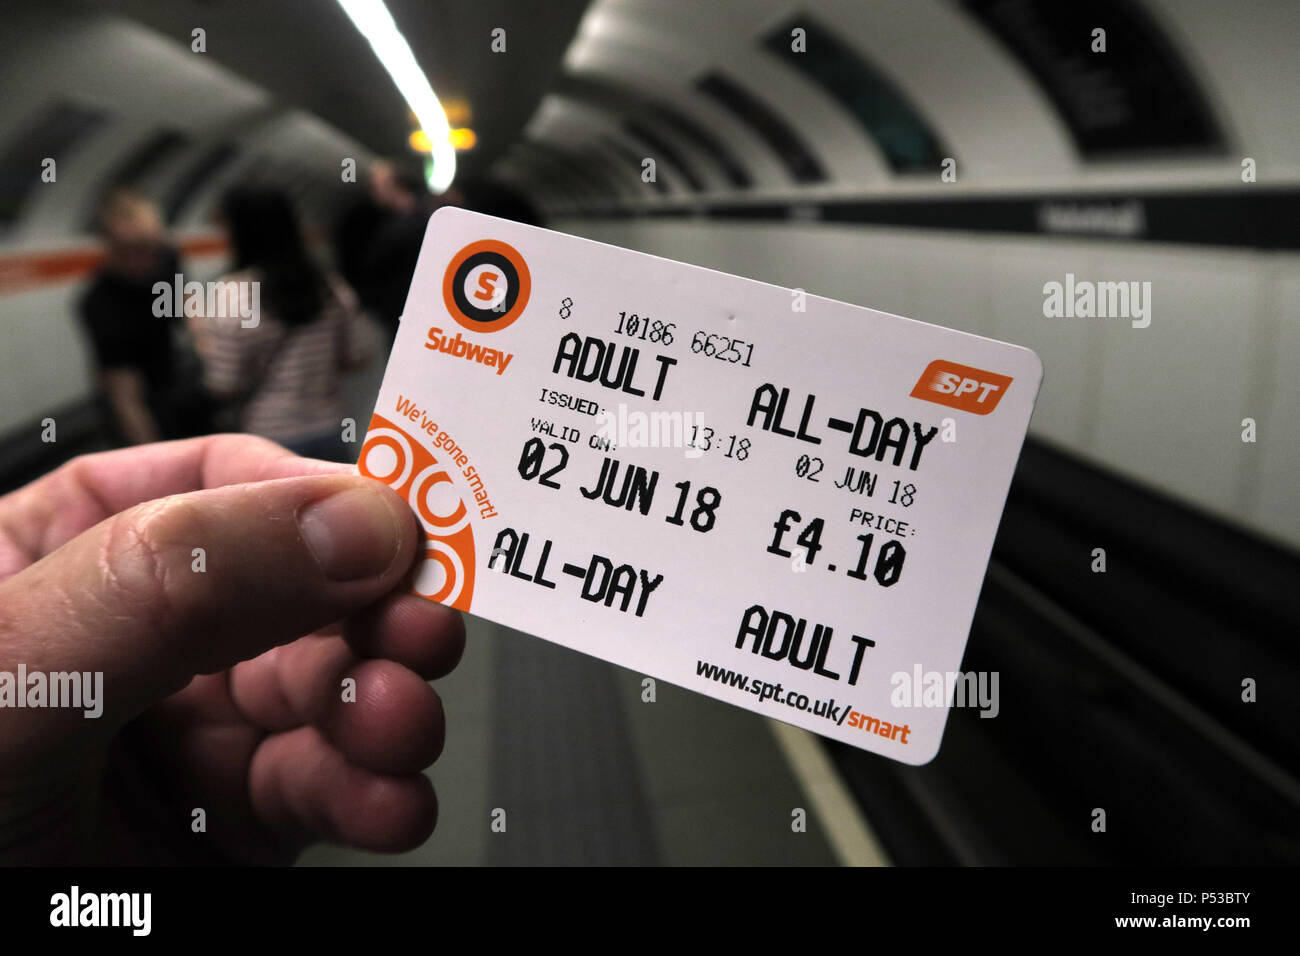 GoTonySmith,@HotpixUK,subway,railway,city centre,train,transport,passenger,passengers,orange,rolling stock,Metro Cammell,Glasgow District Subway,narrow guage,Outer Circle,Inner Circle,integrated,electric,branding,corporate identity,adult,allday,all-day,smartcard,system,ticket,card,inside,carriage,station,held,fingers,holding,holding a smartcard,economic,travel,SPT Smart